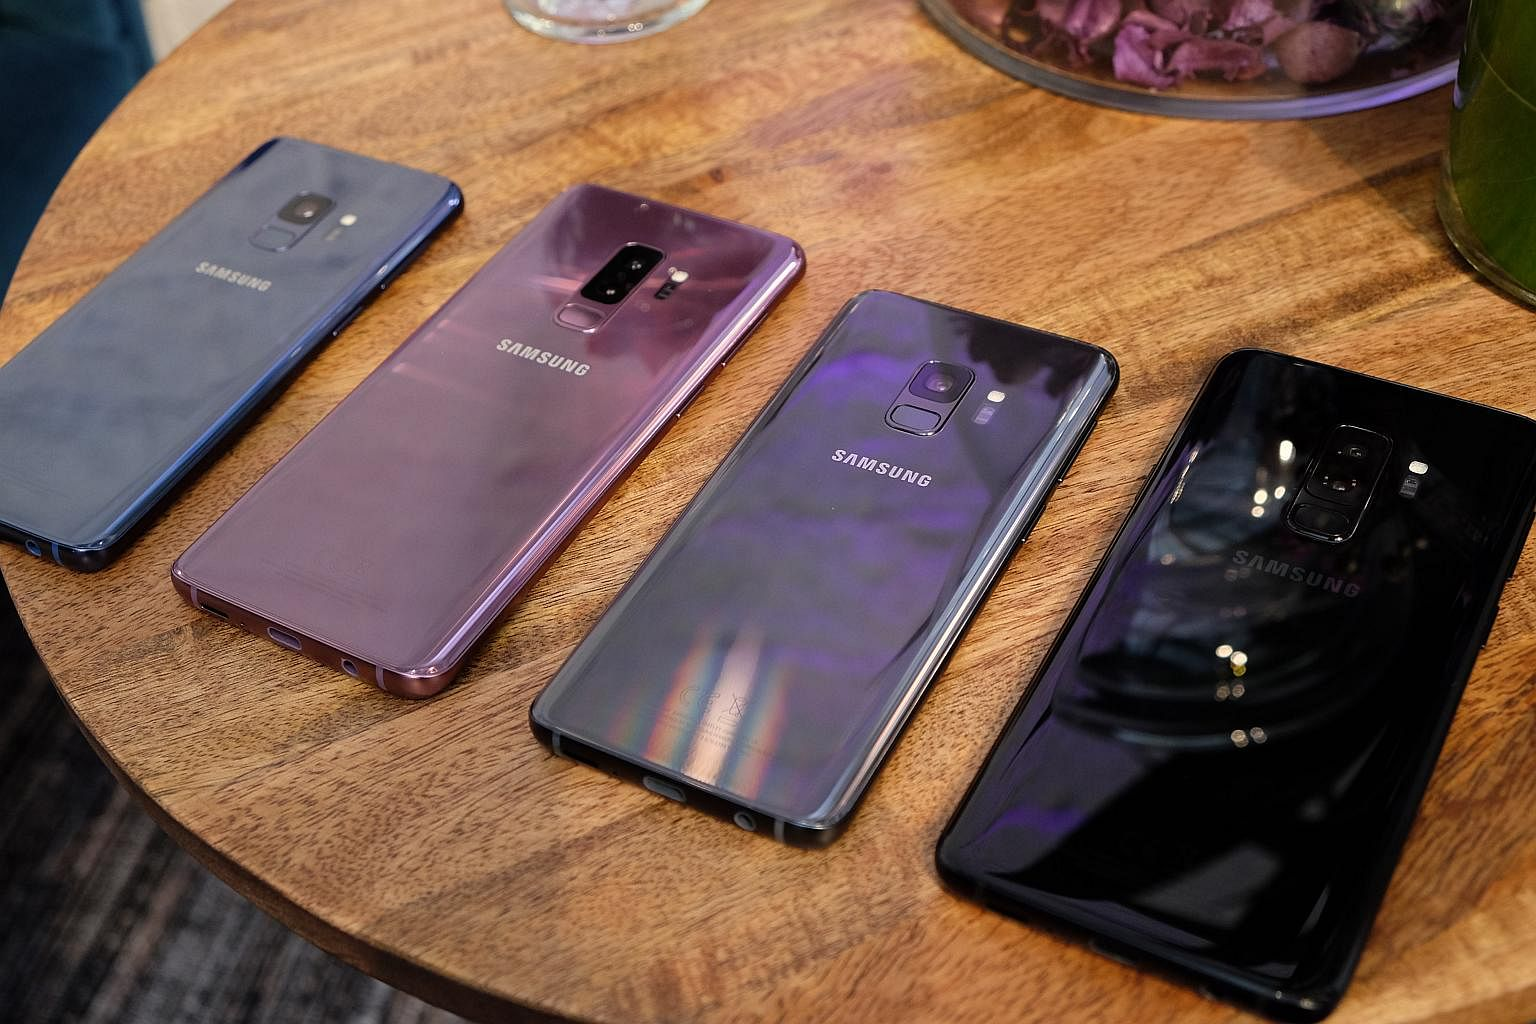 1d22163db8a978 Samsung launches S9 and S9+ smartphones, focuses on camera improvements,  Smartphones News   Top Stories - The Straits Times